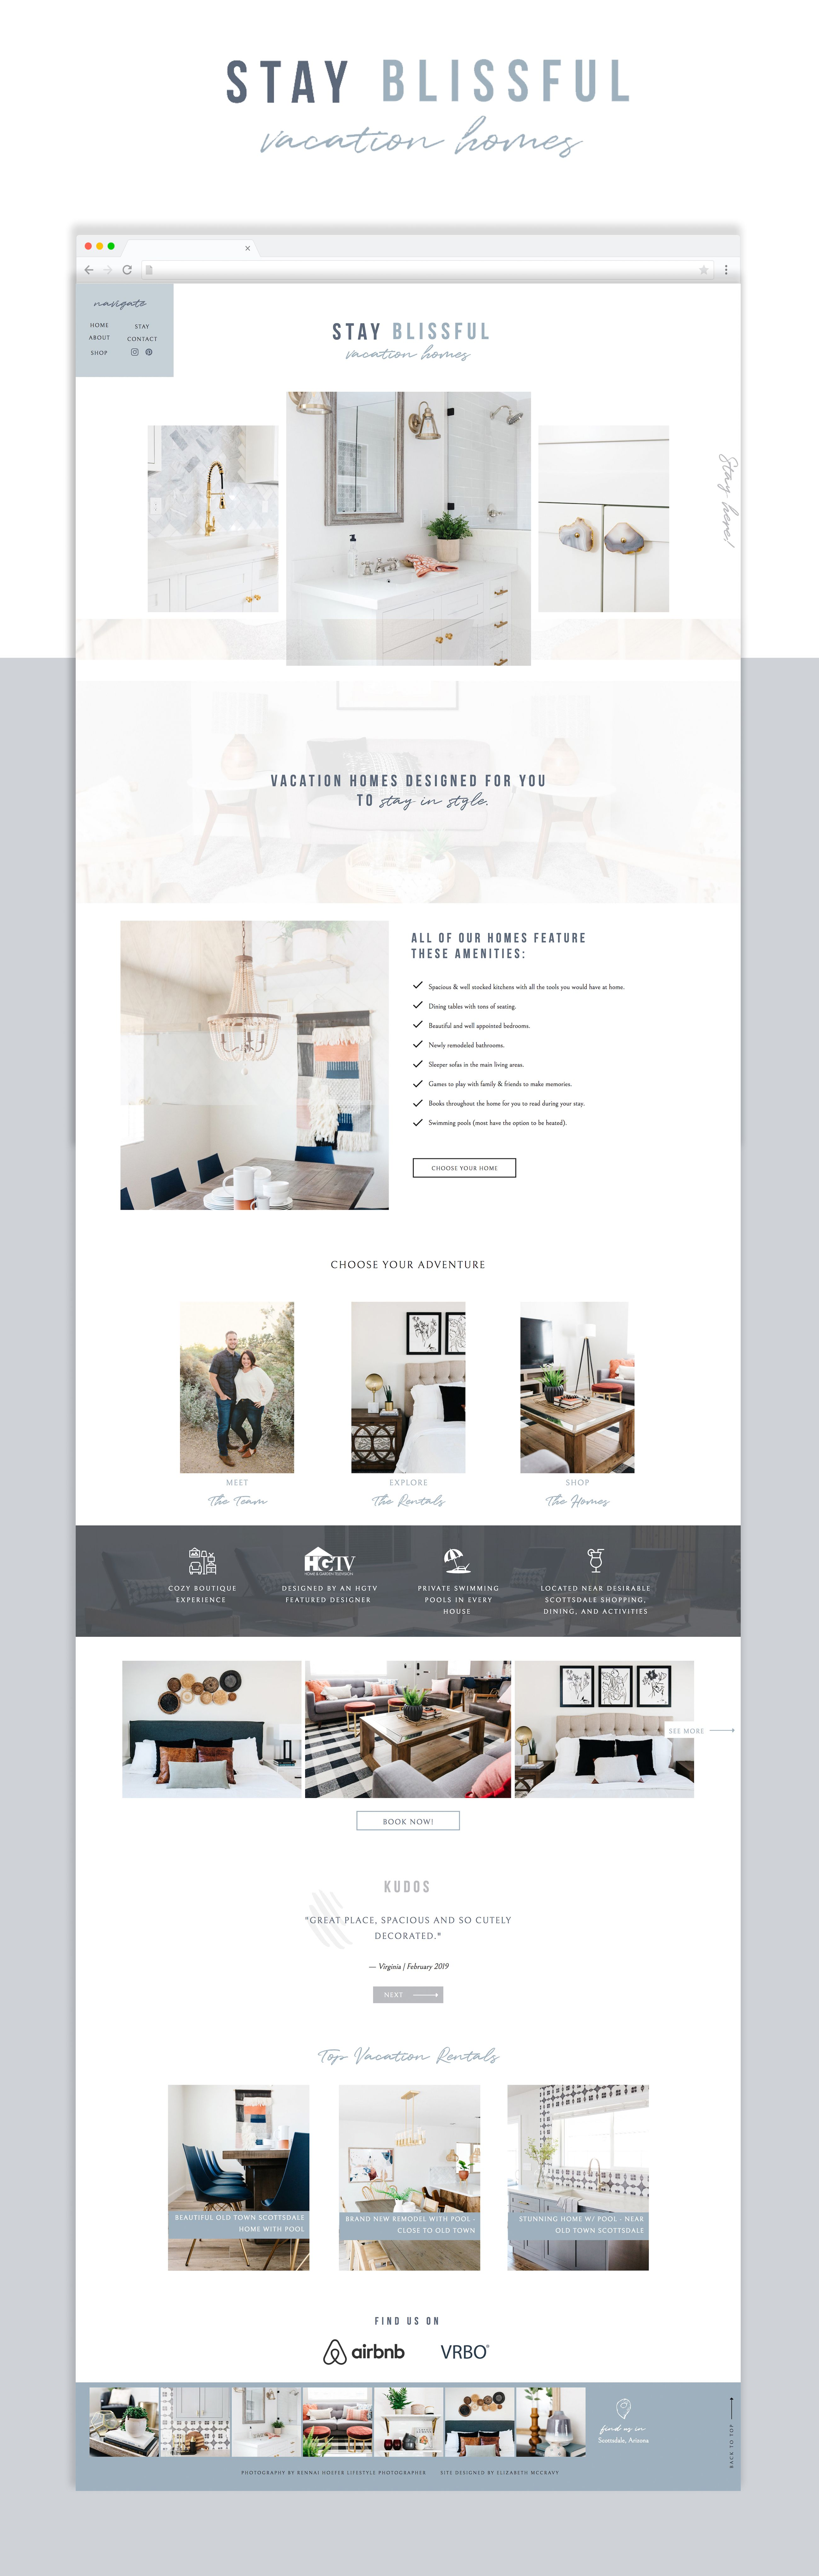 Showit website template for interior designers and home ...